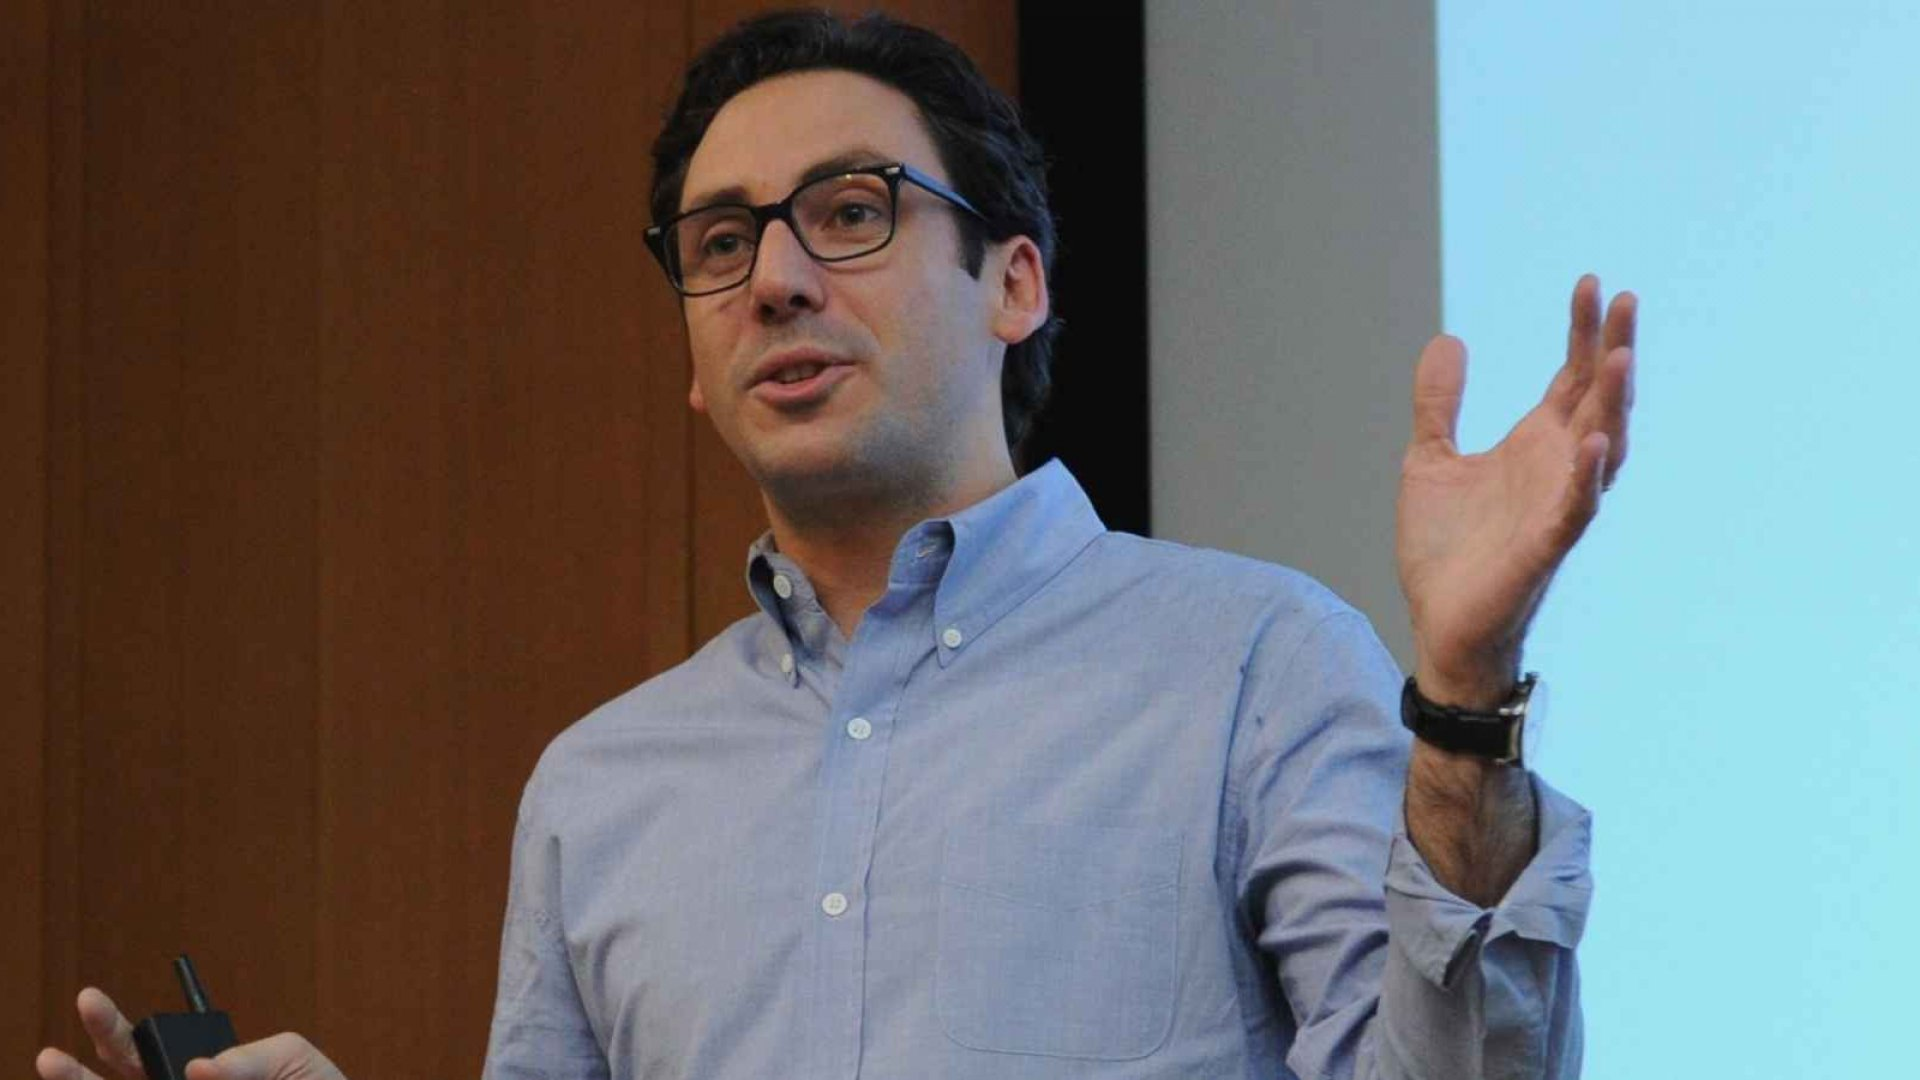 How Warby Parker Is Priming Itself for an IPO